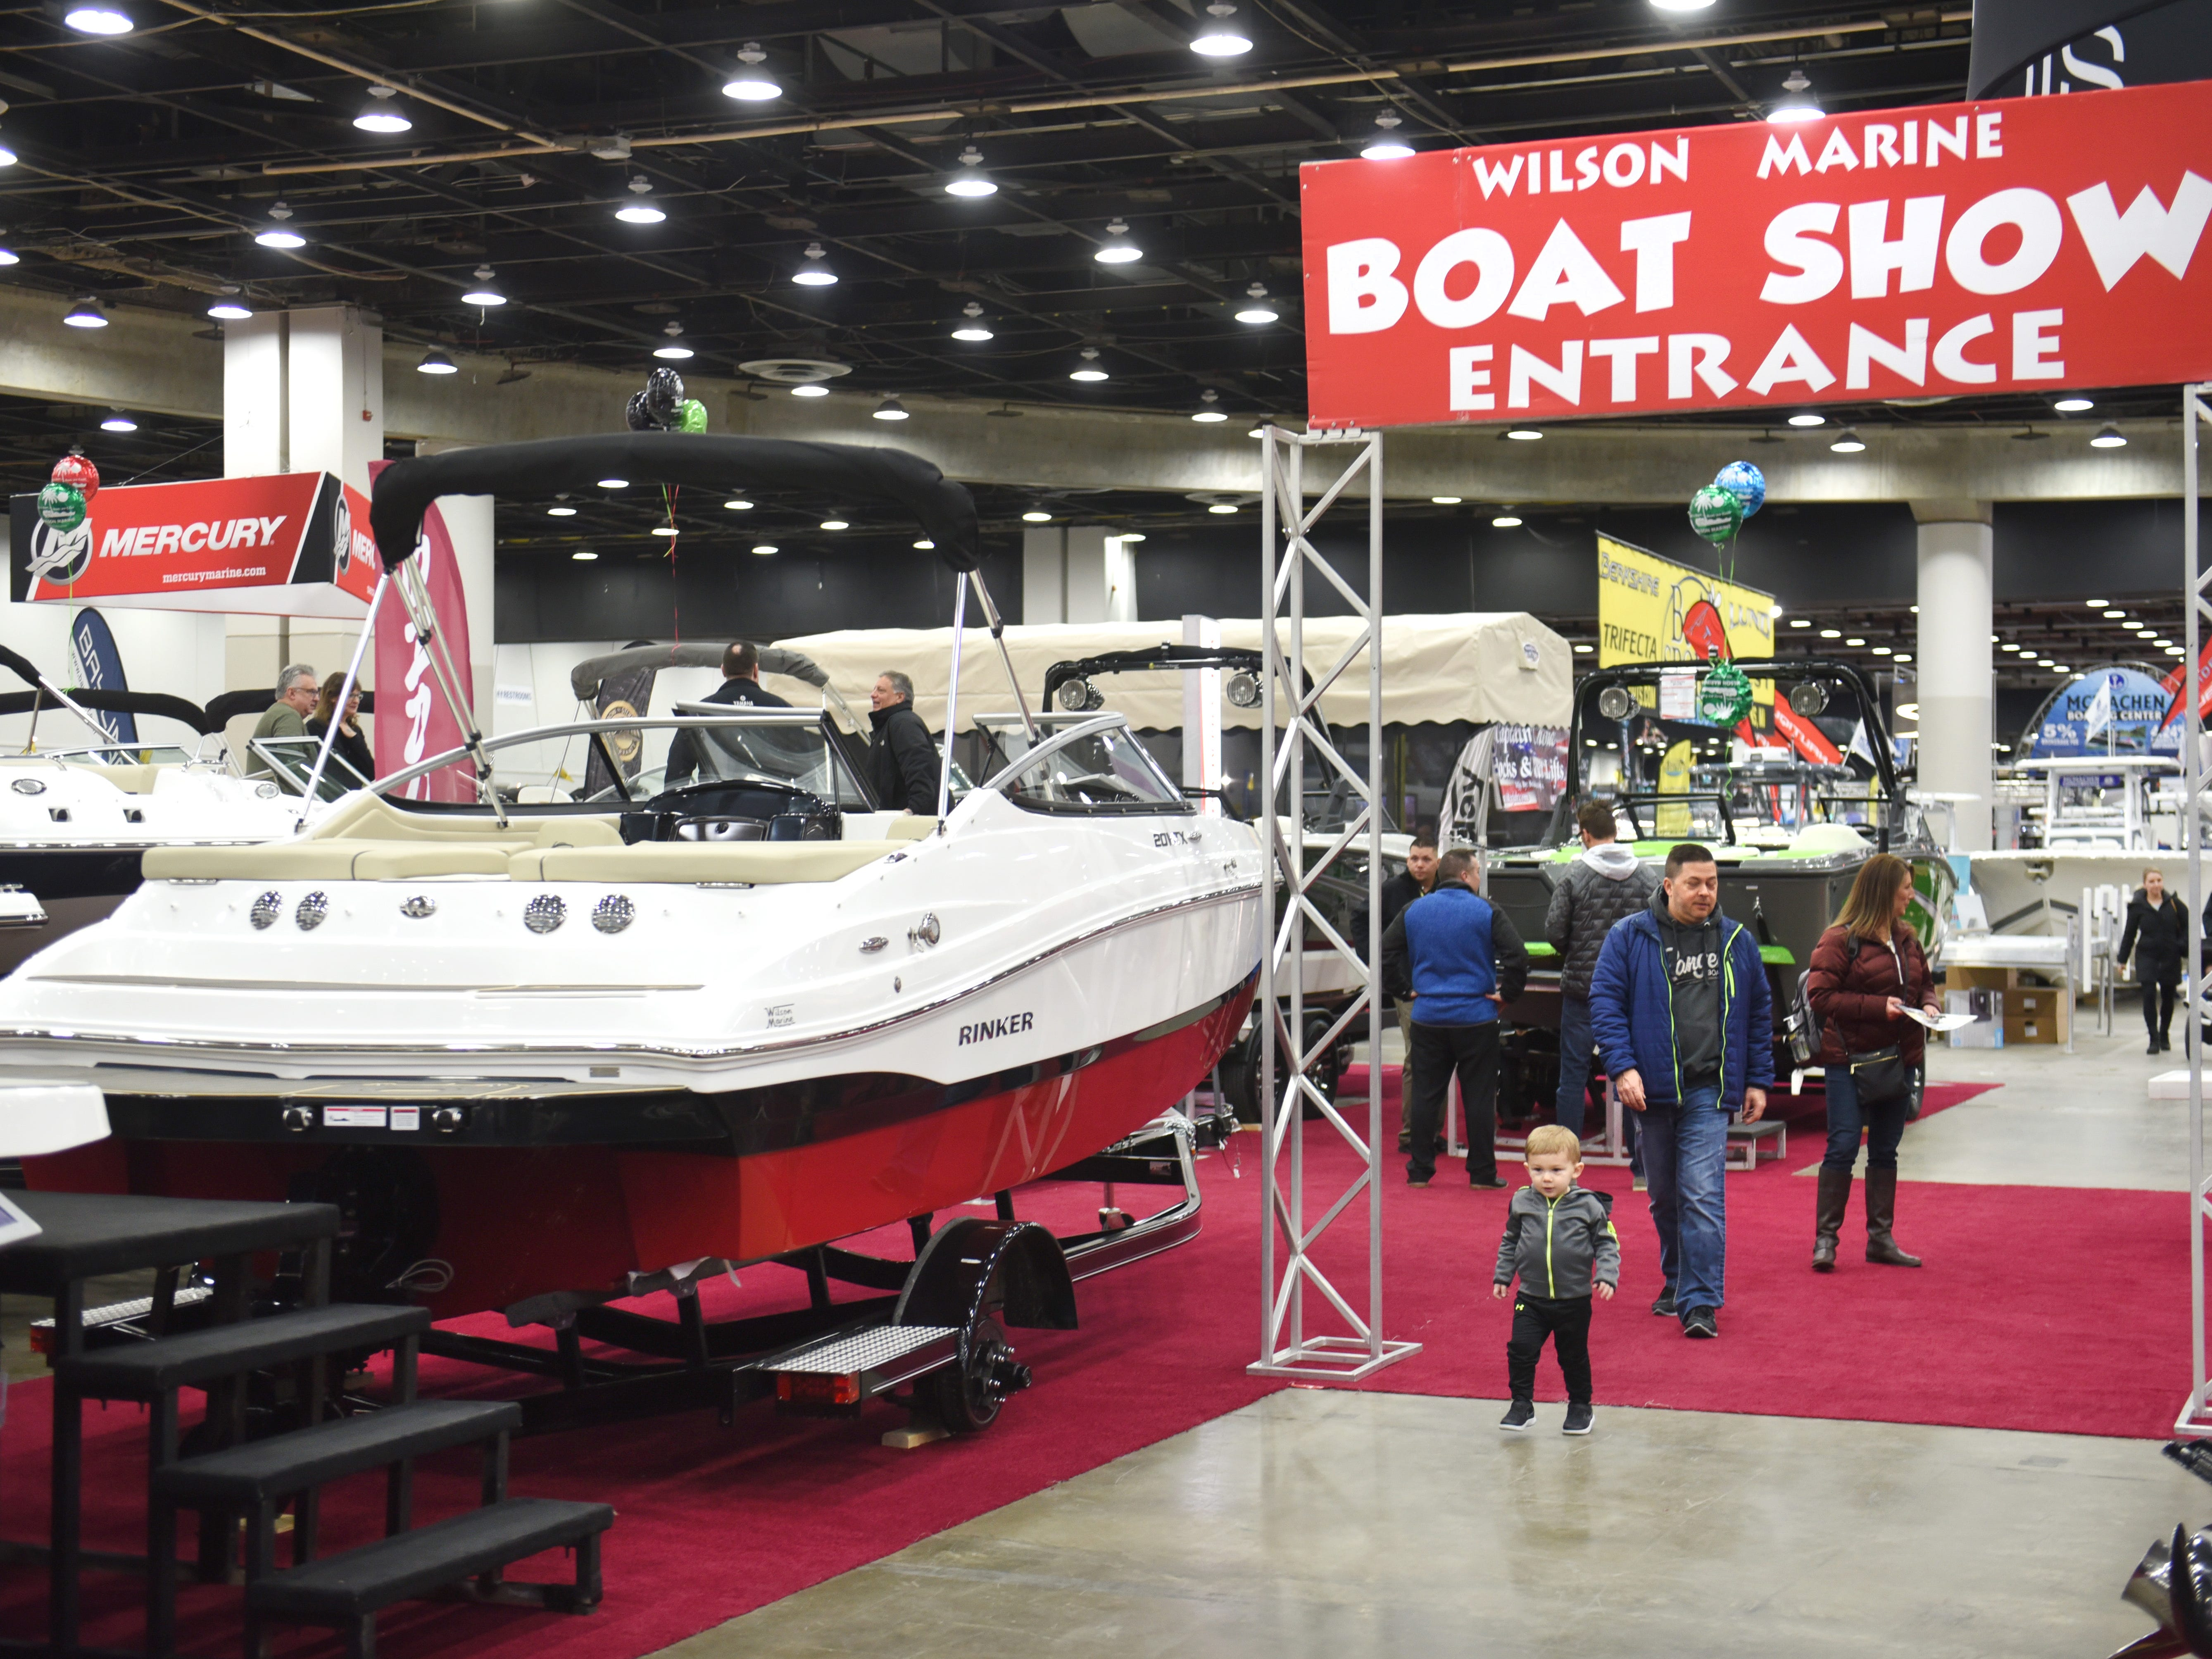 Plenty of watercraft are on display at the Detroit Boat Show at Cobo Center in Detroit on Saturday, February 16, 2018.